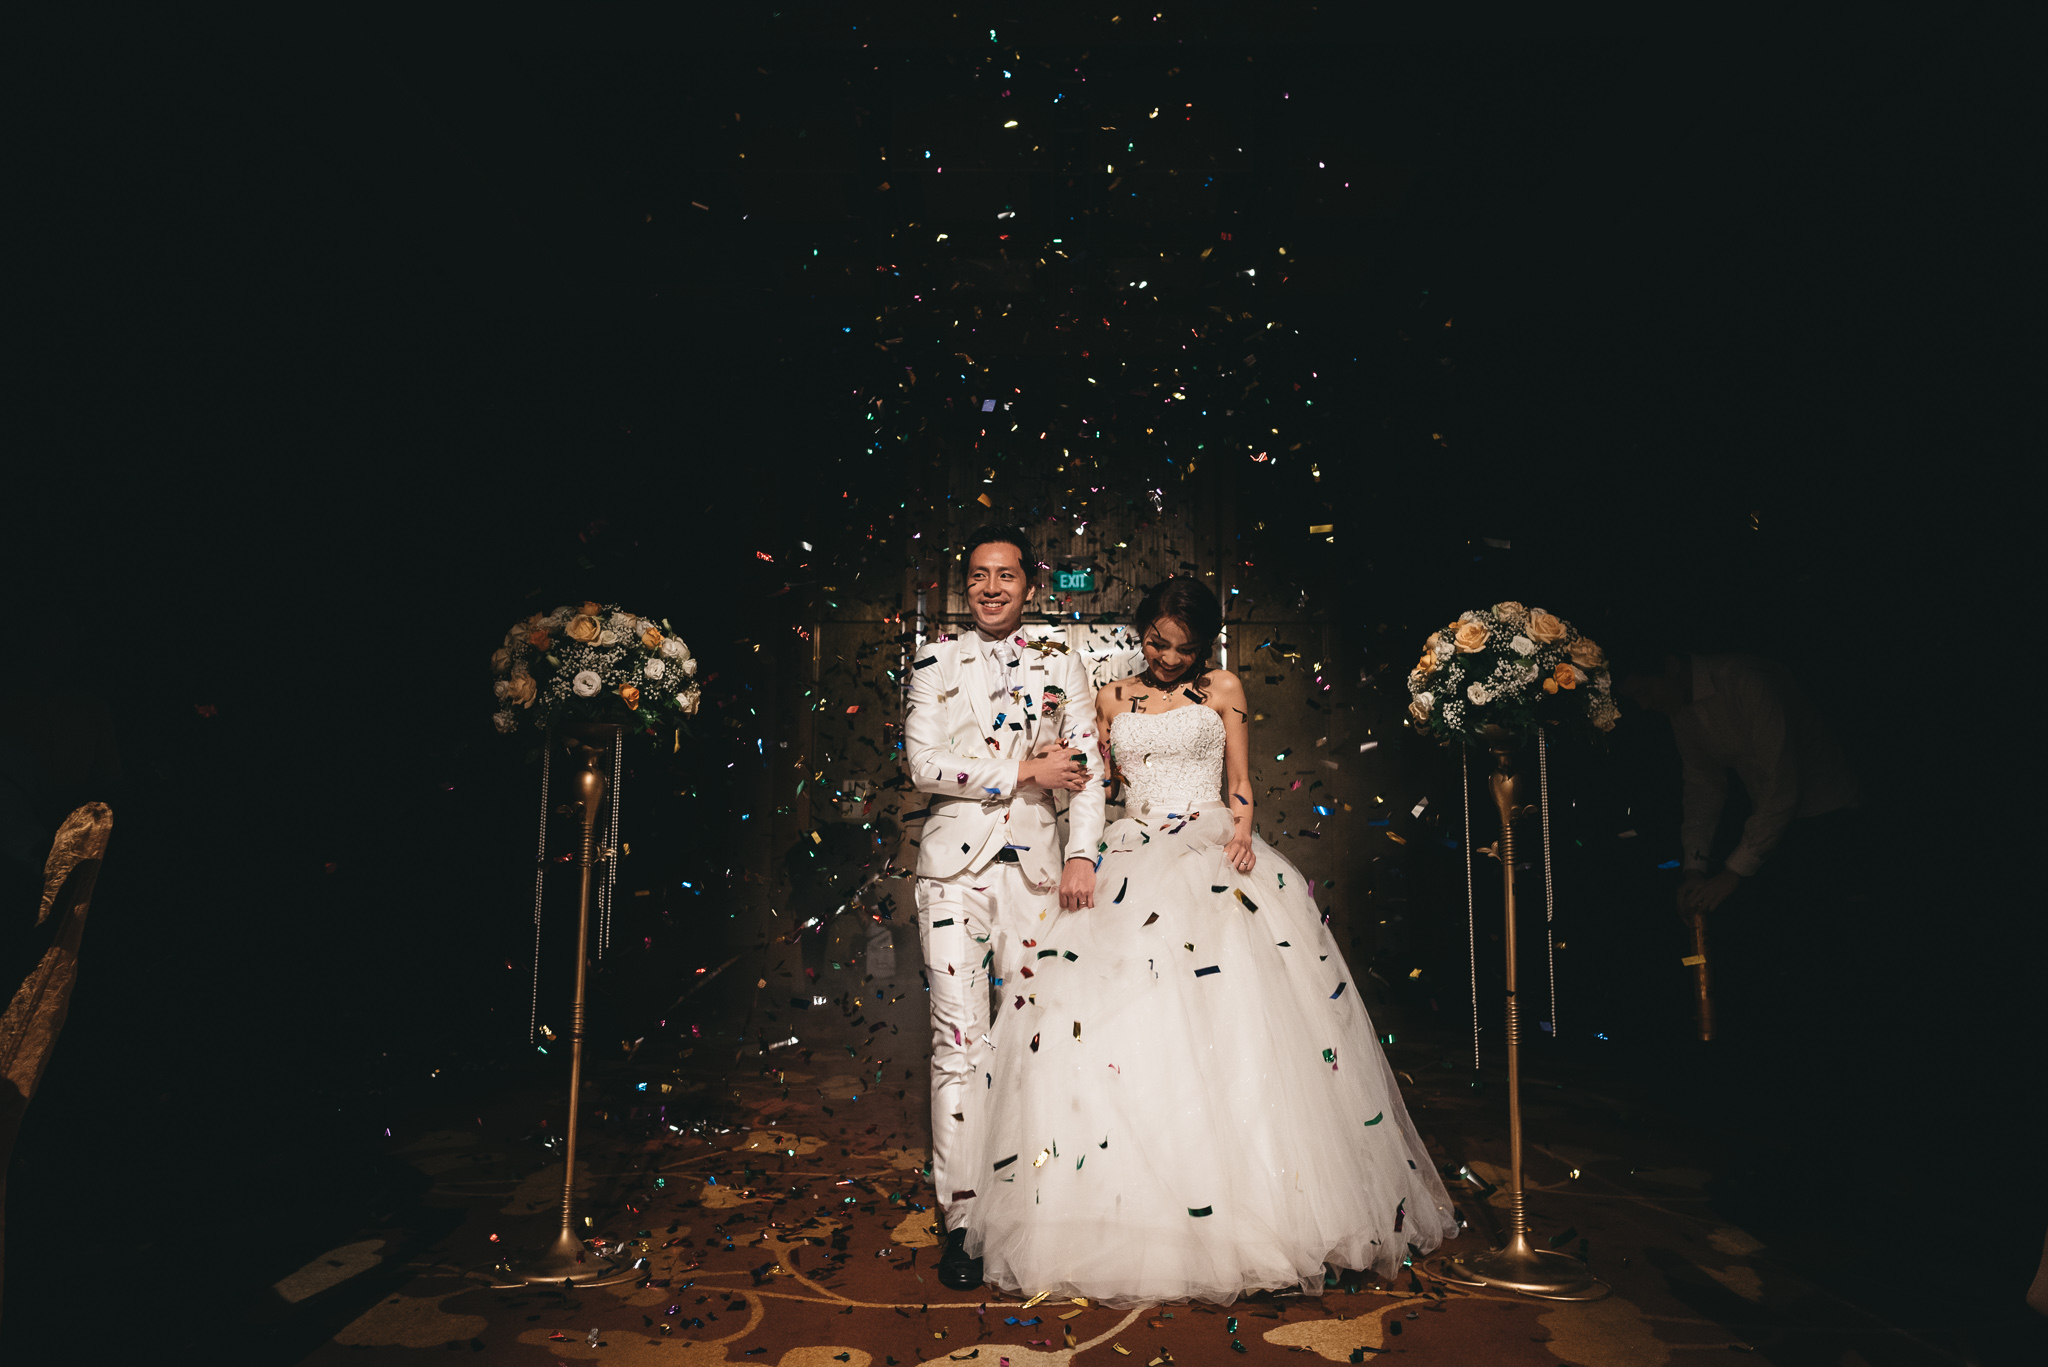 Fiona & Terence Wedding Day Highlights (resized for sharing) - 207.jpg